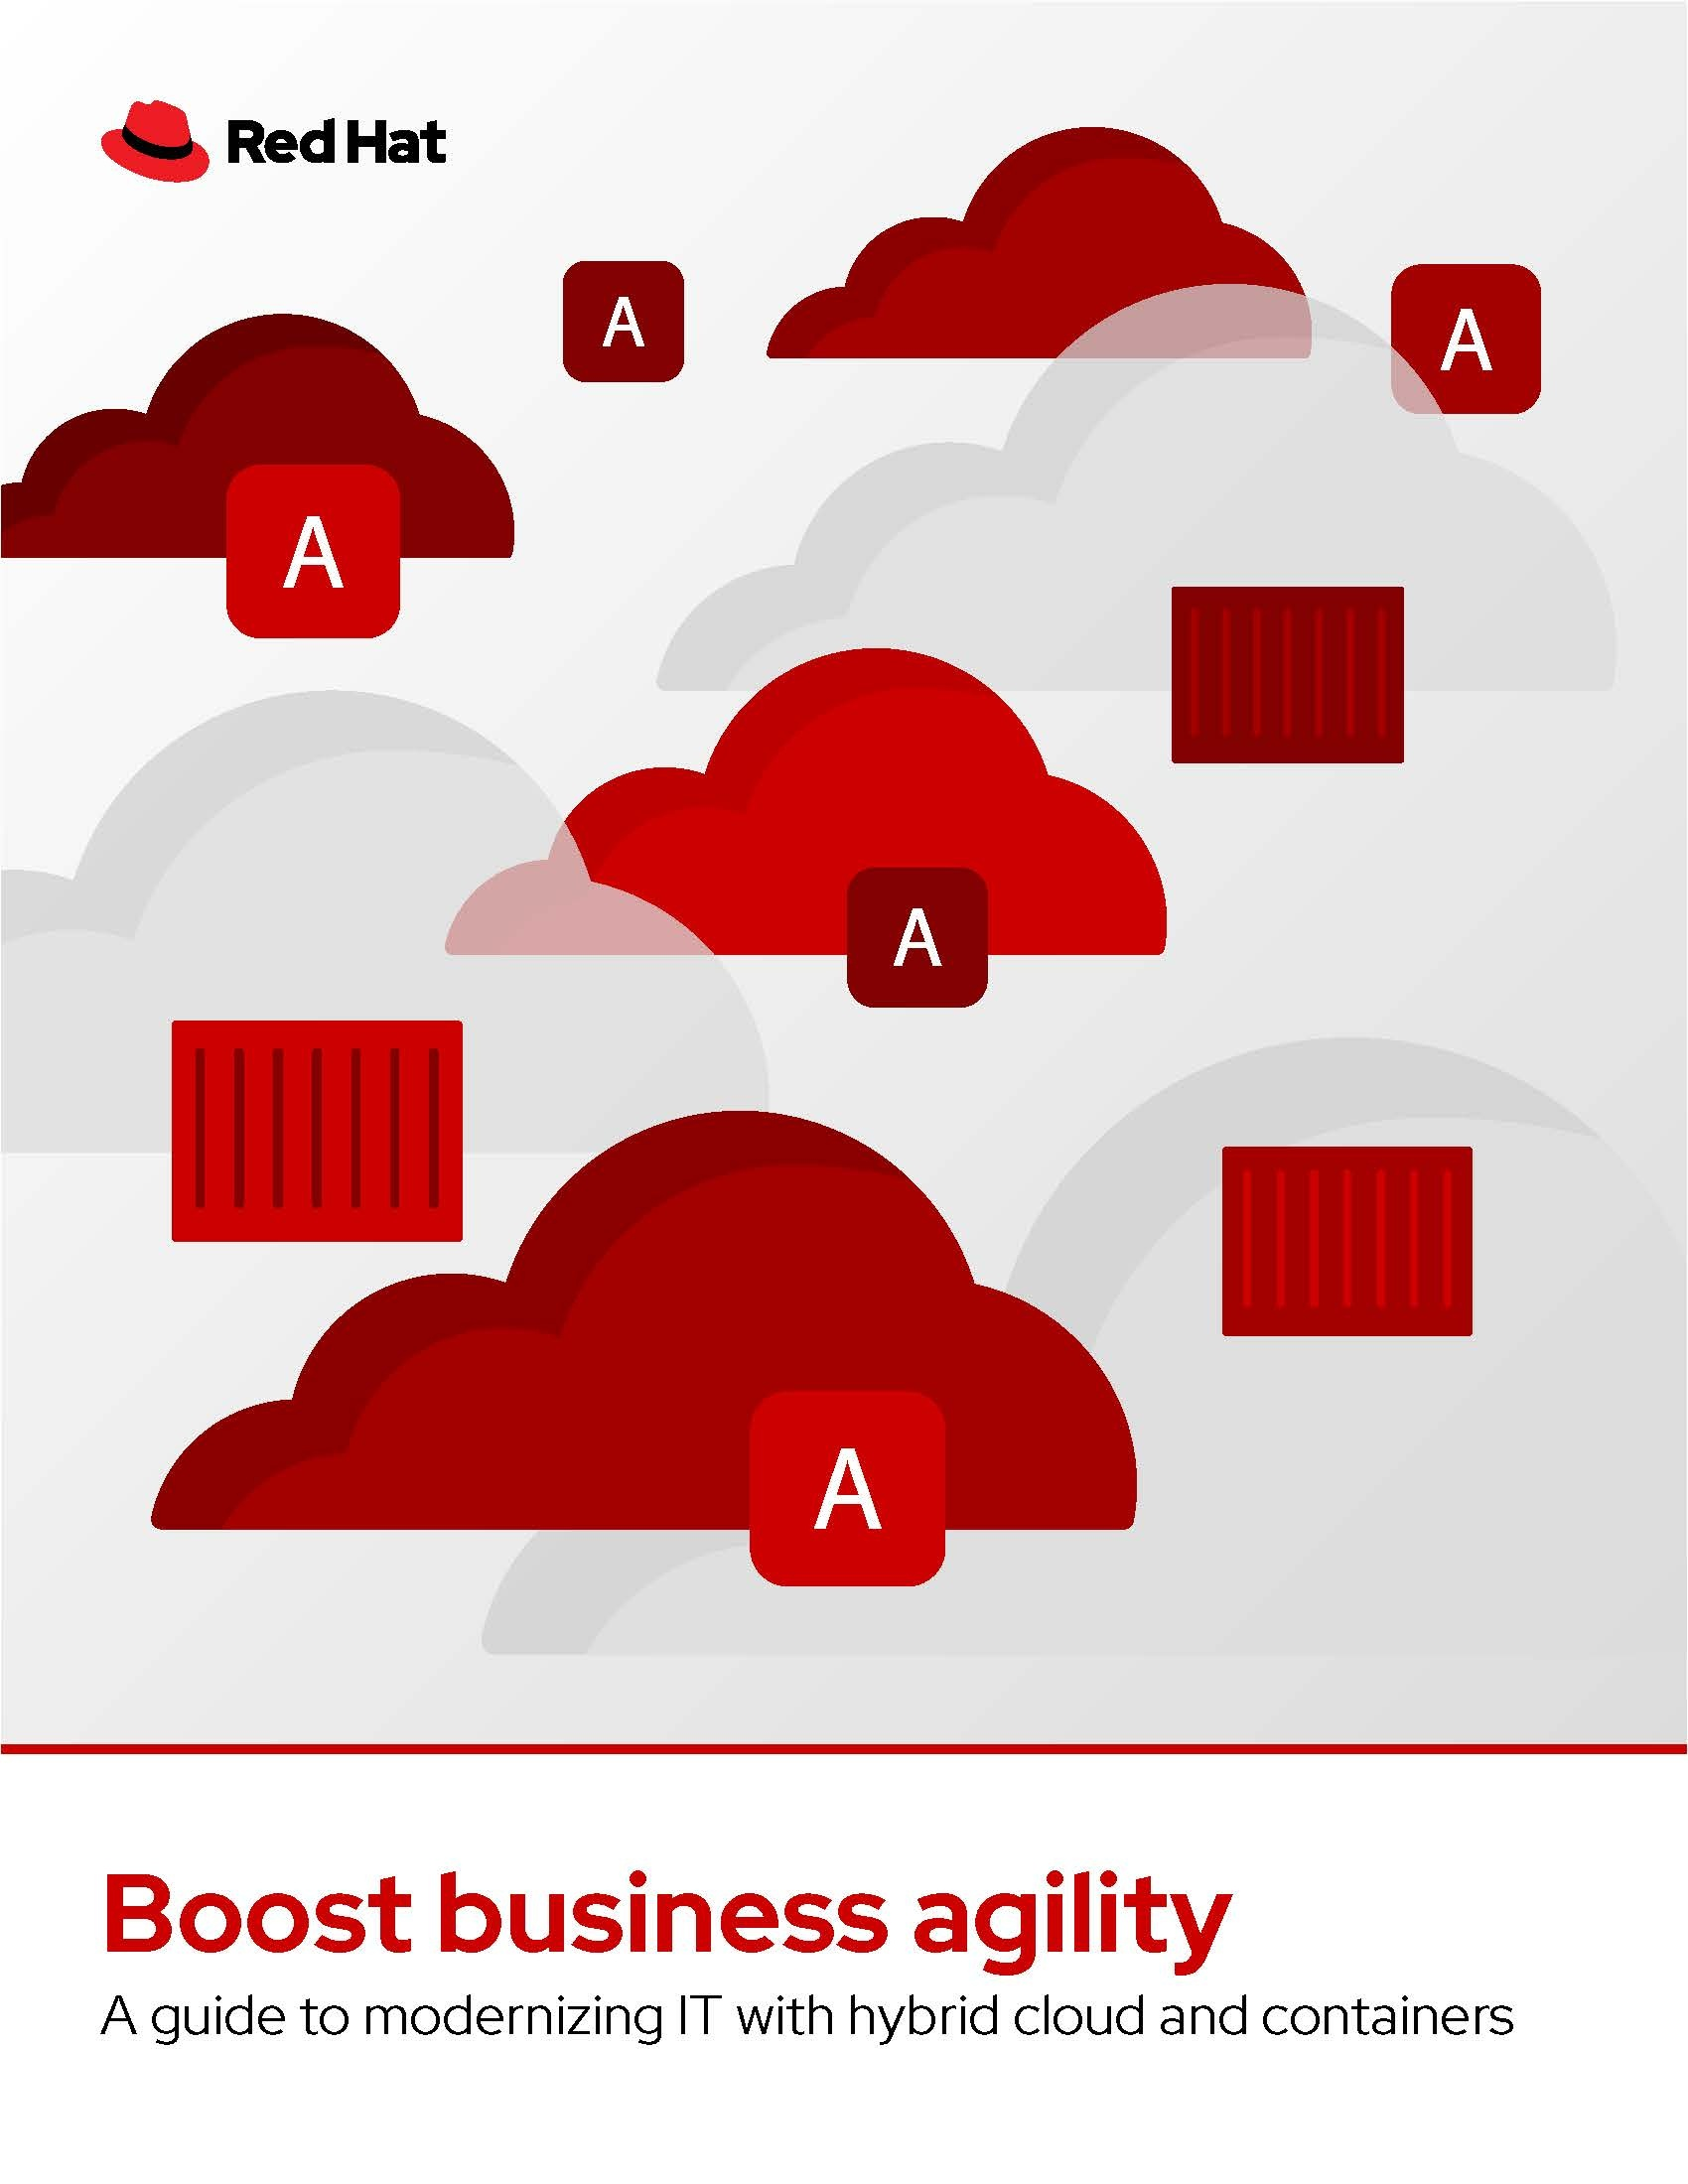 Boost Business Agility with Hybrid Cloud and Containers